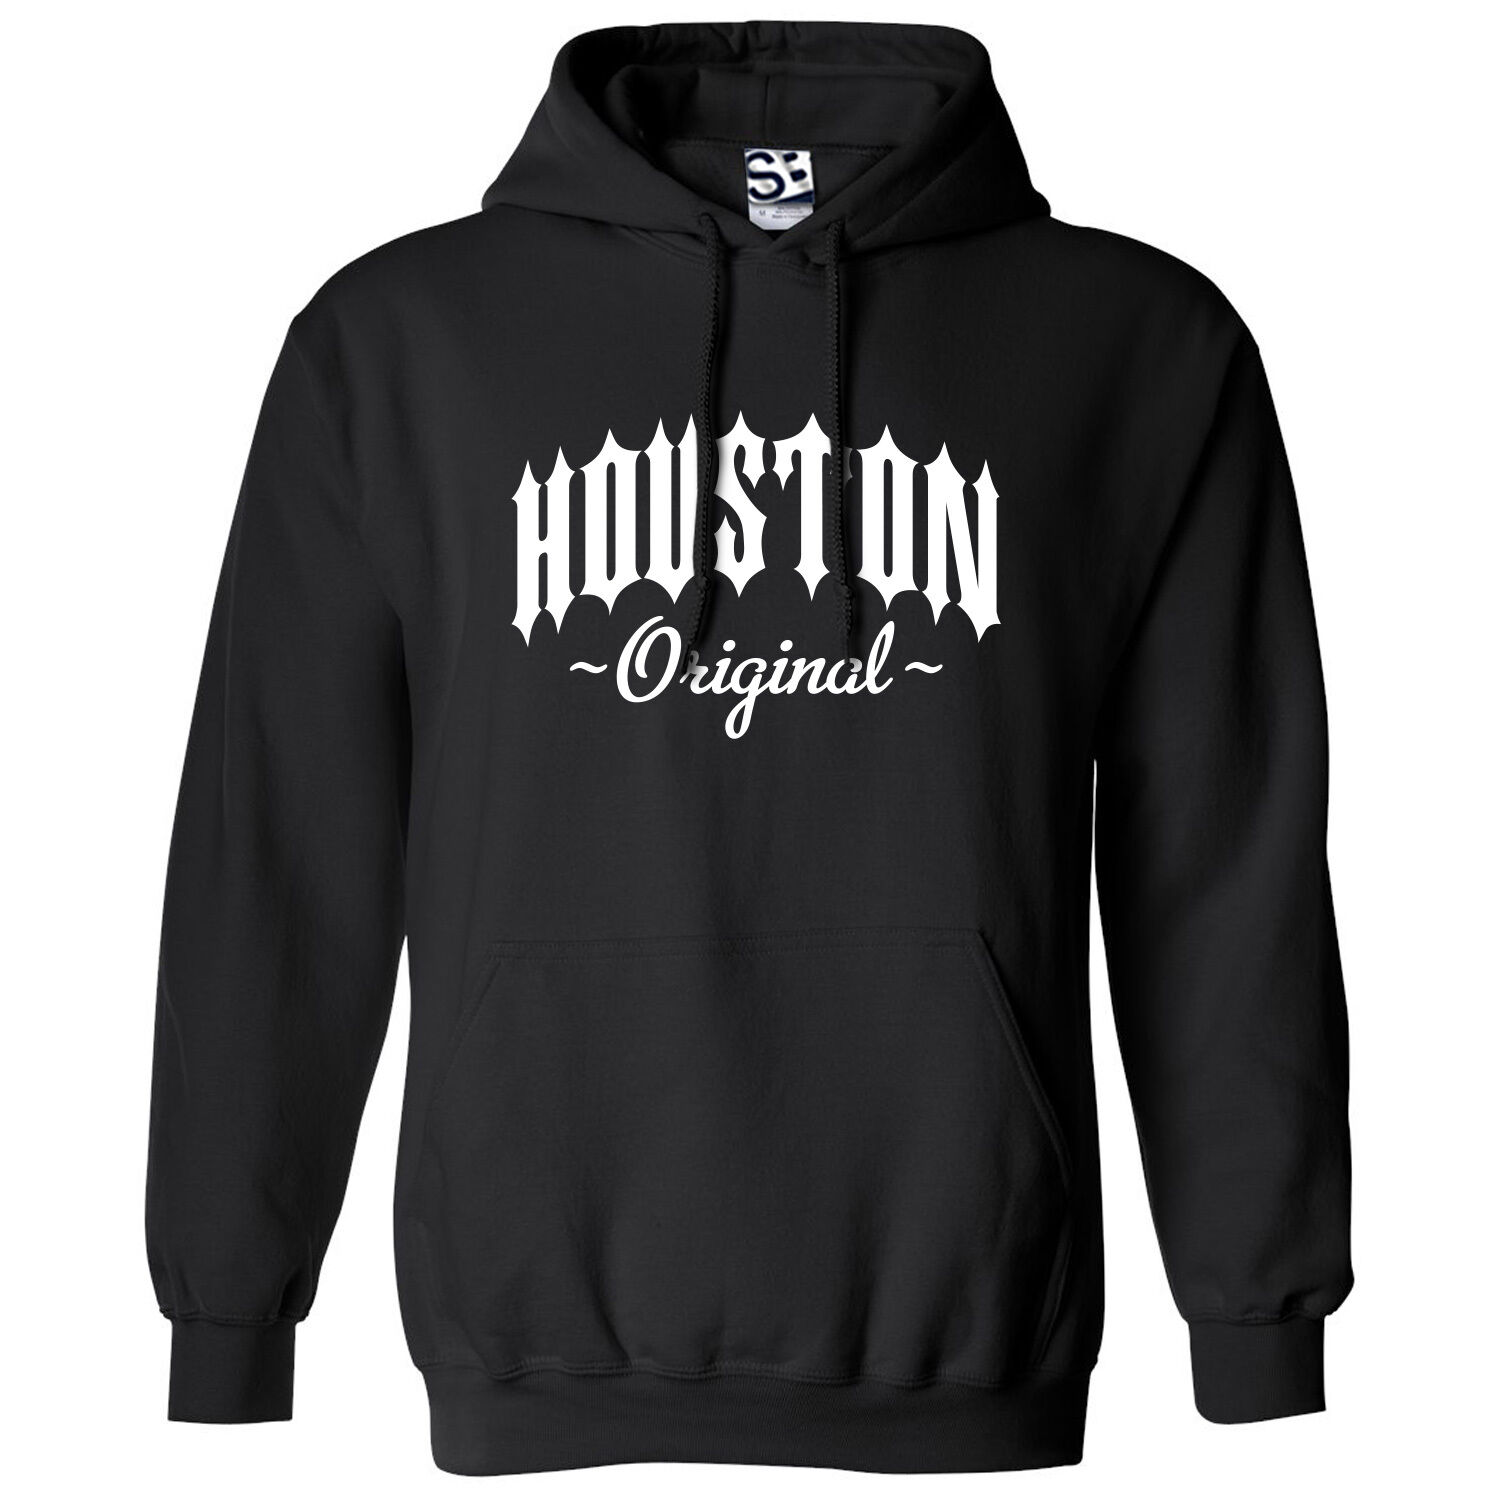 Houston Original Outlaw HOODIE - Hooded OG Straight Outta Sweatshirt All Farbes